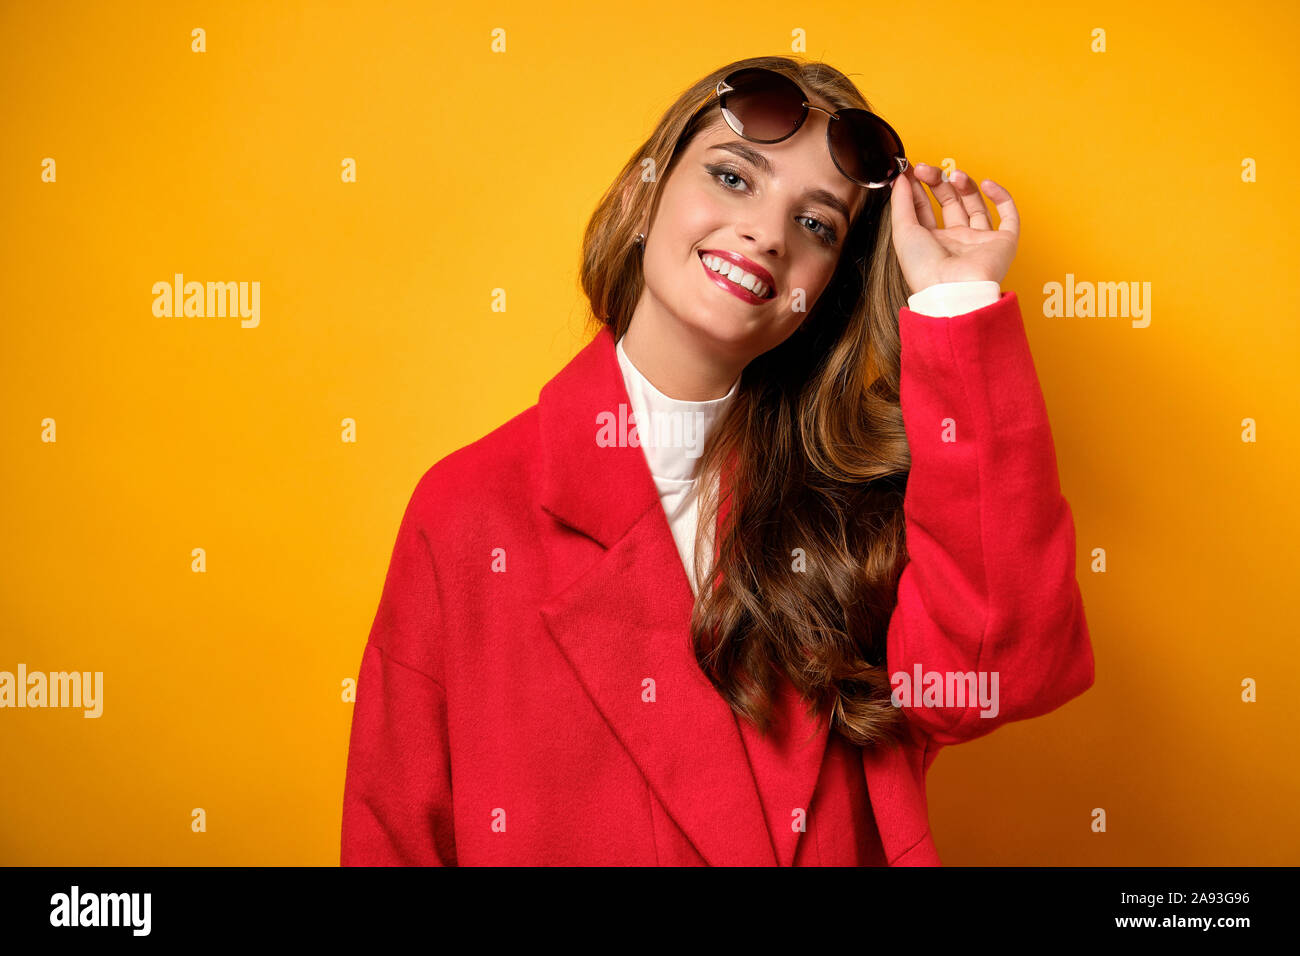 A beautiful girl with red lips stands in a red coat on a yellow background and looks up at the frame, lifting her sunglasses. Stock Photo